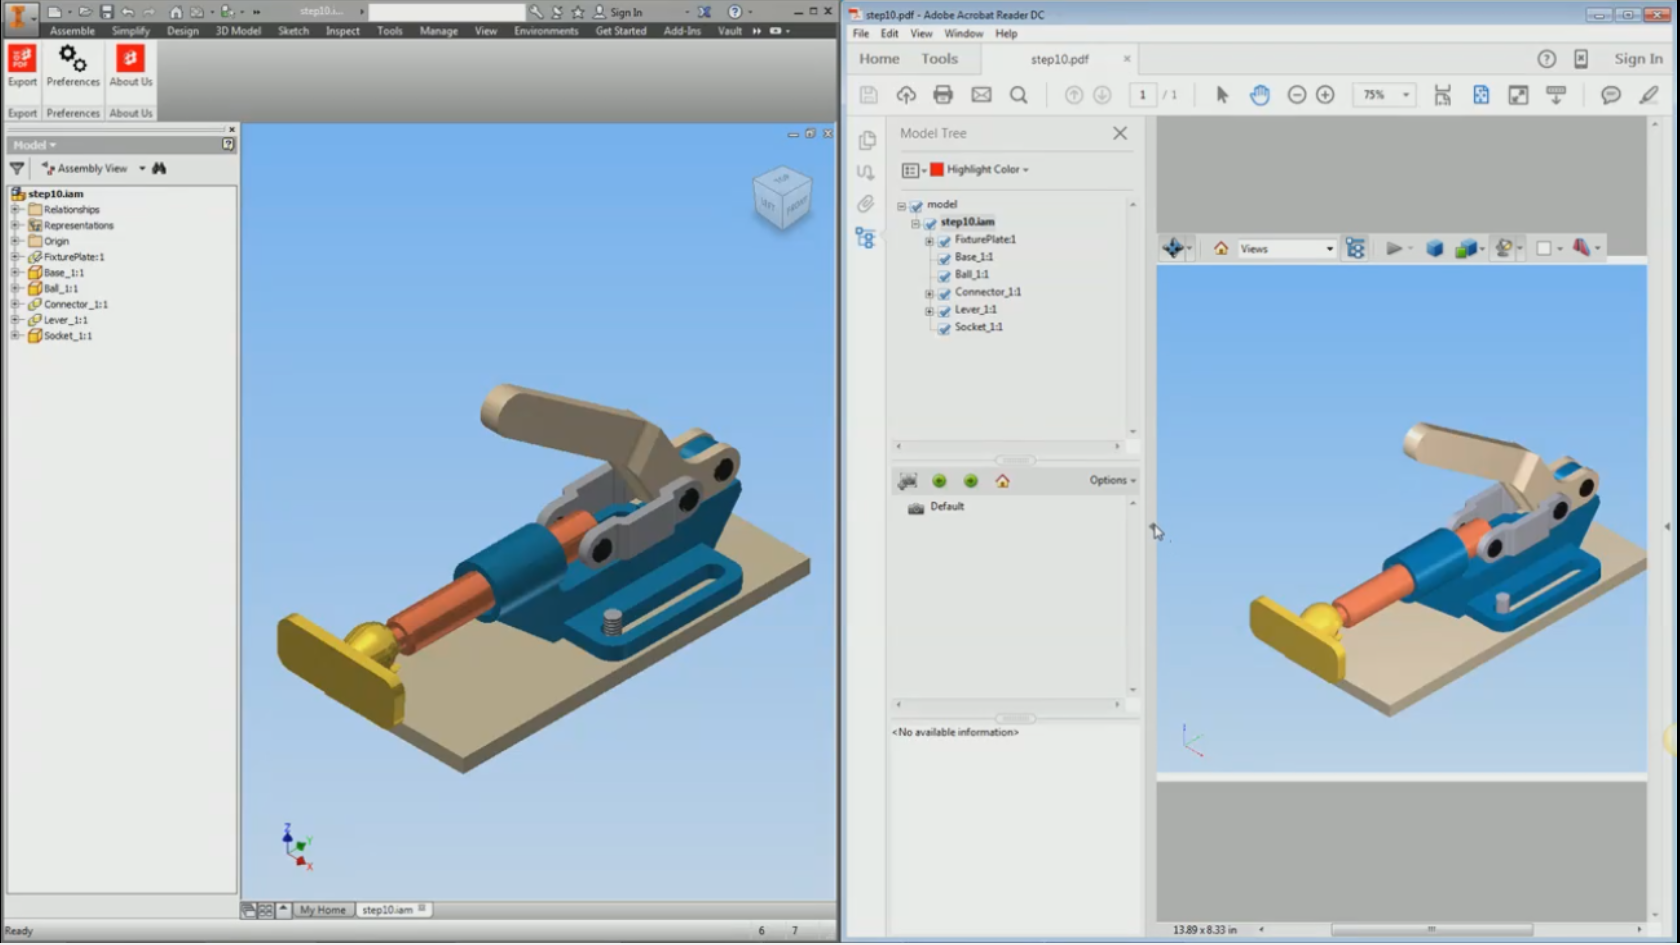 Left image of model in Inventor and the right one is the exported 3D PDF from ProtoTech's 3D PDF Exporter plug